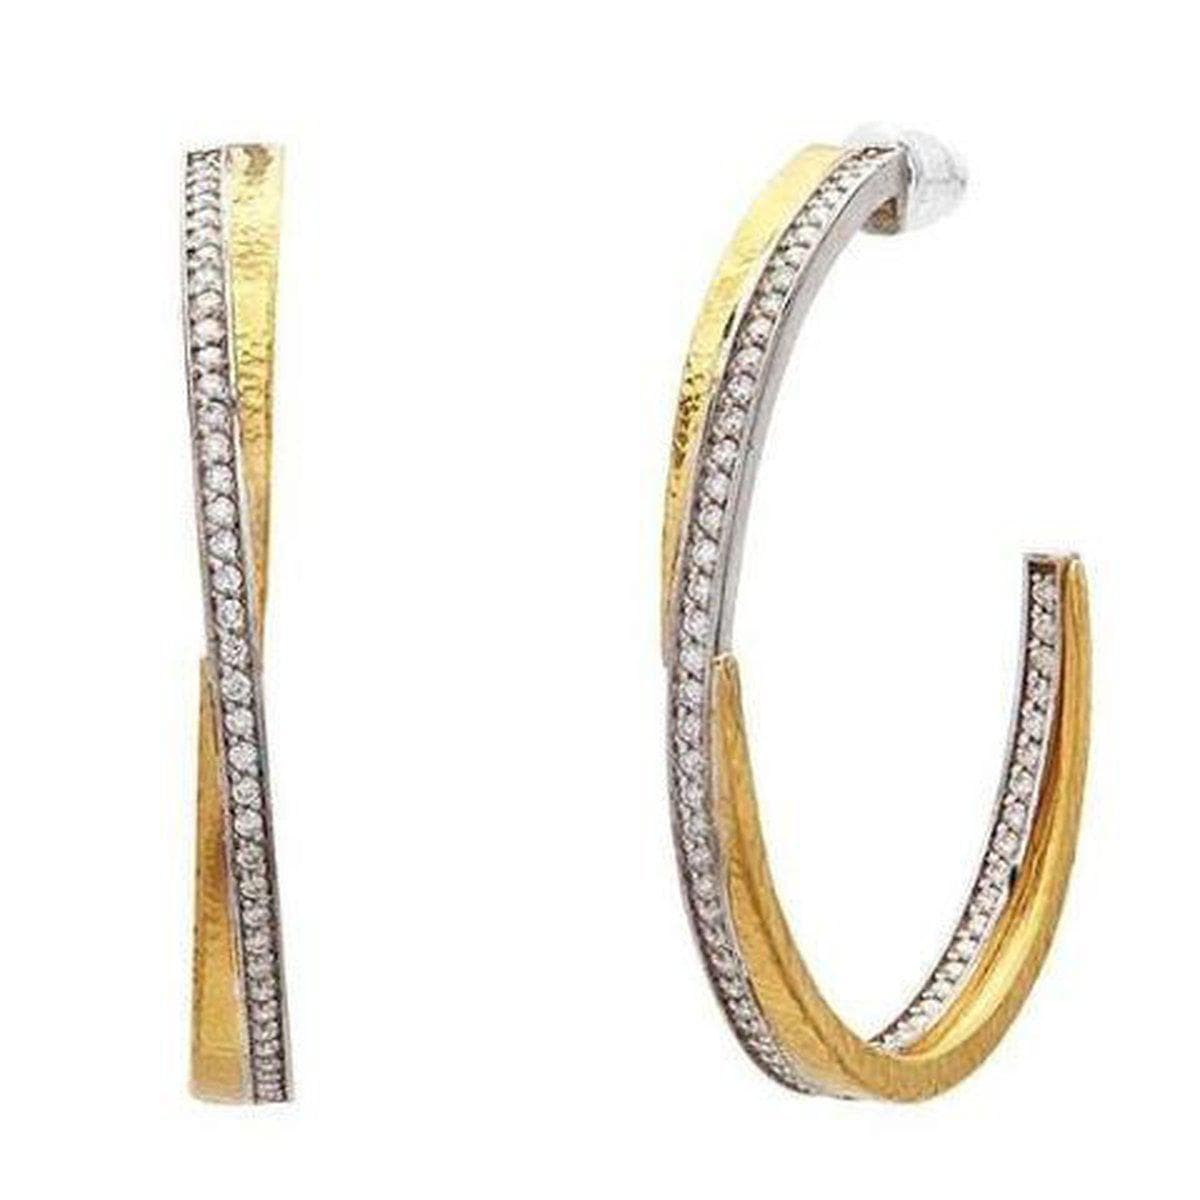 Duet 24K Gold White Diamond Earrings - E-INT-HP-L-40DI-GURHAN-Renee Taylor Gallery